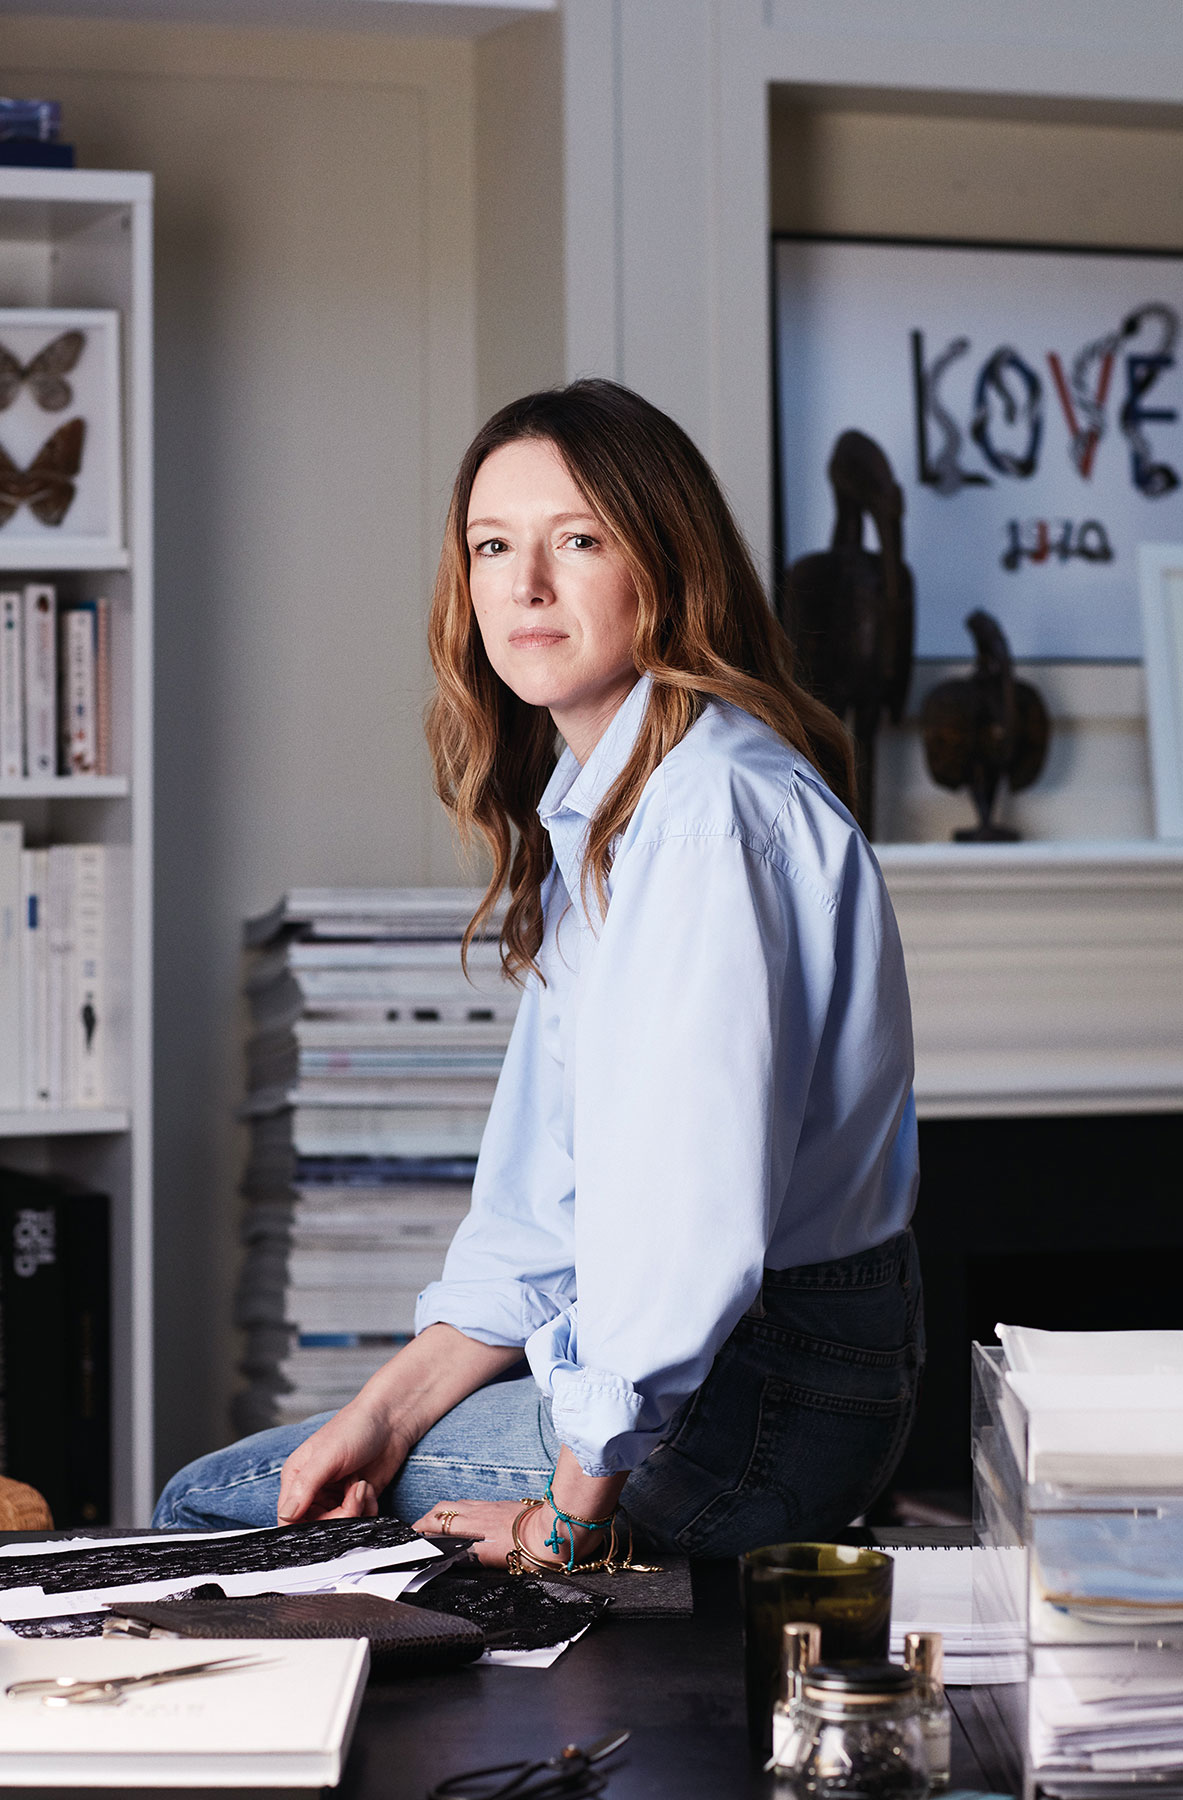 Clare Waight Keller, stylist and fashion designer